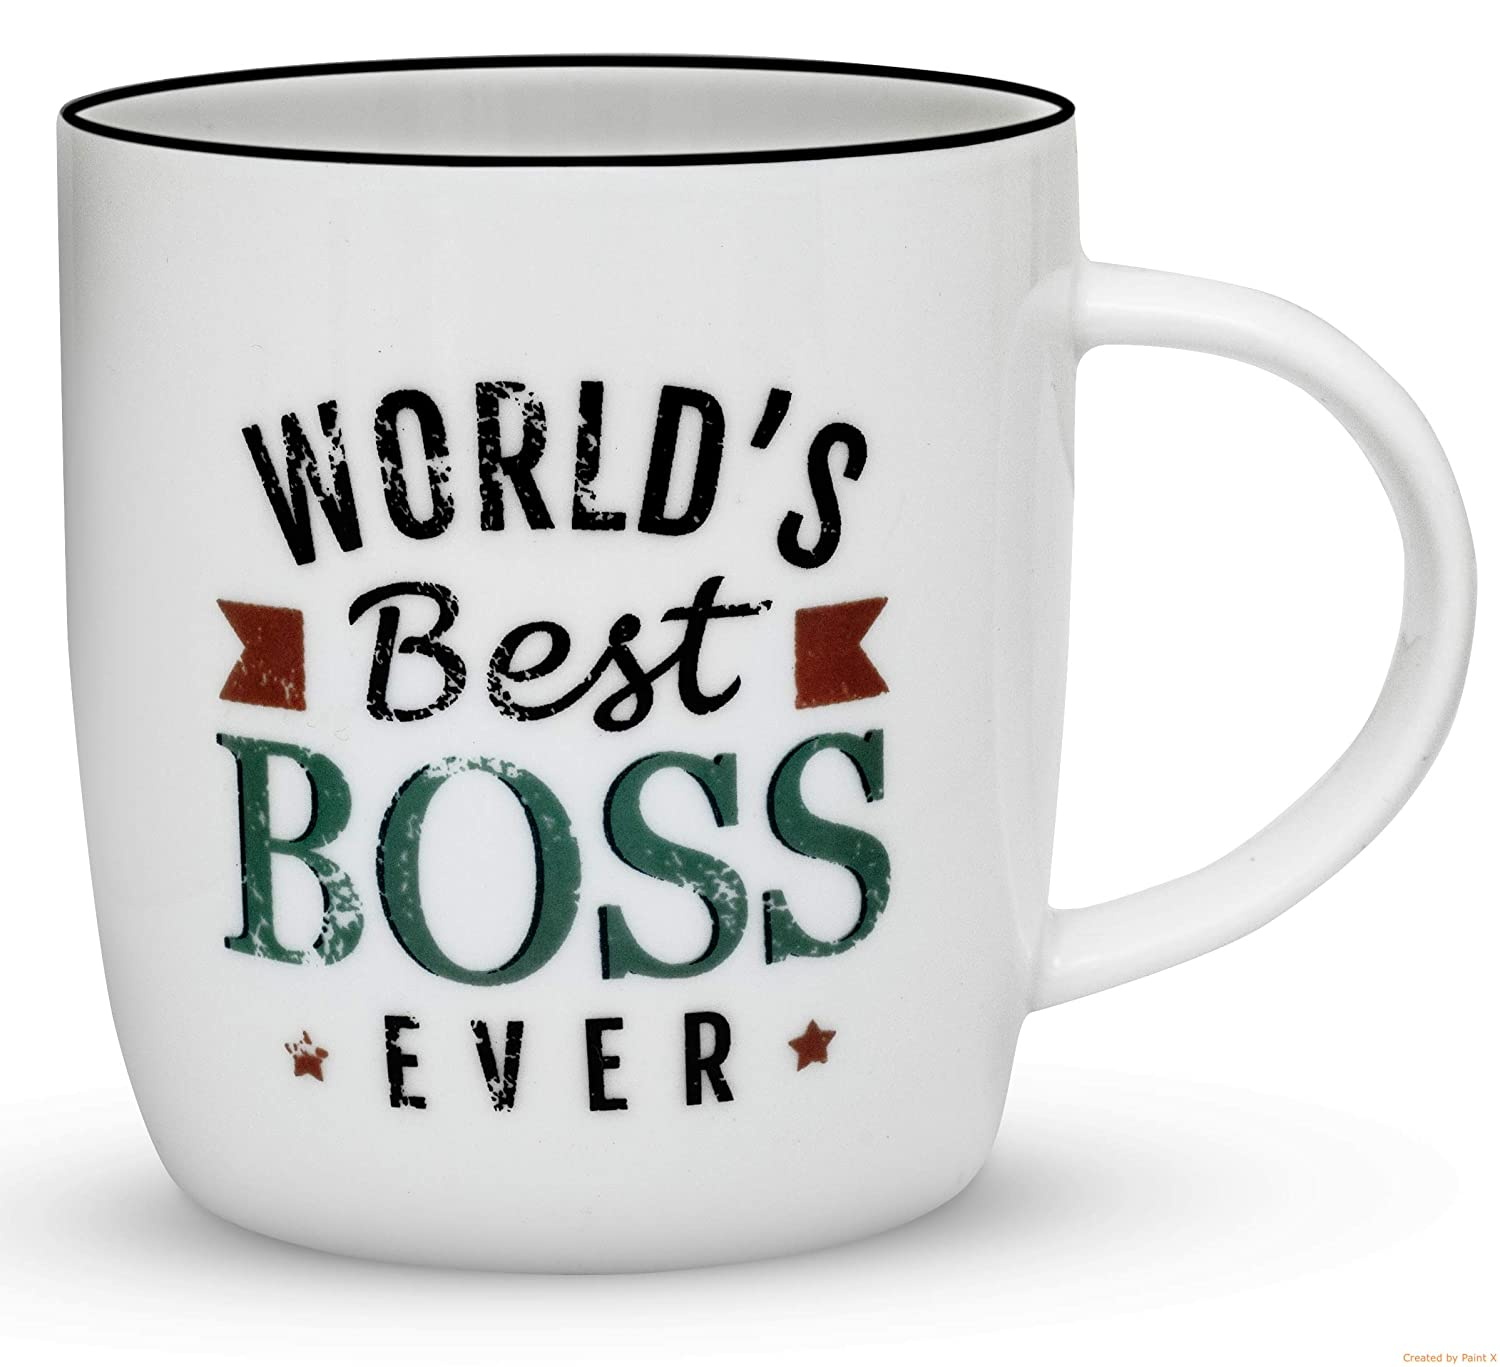 Gifffted The Worlds Best Boss Ever Coffee Mug Bosses Day Gifts Ideas Funny Present For My Greatest Male Or Female Men Women Great Office Gift Mugs